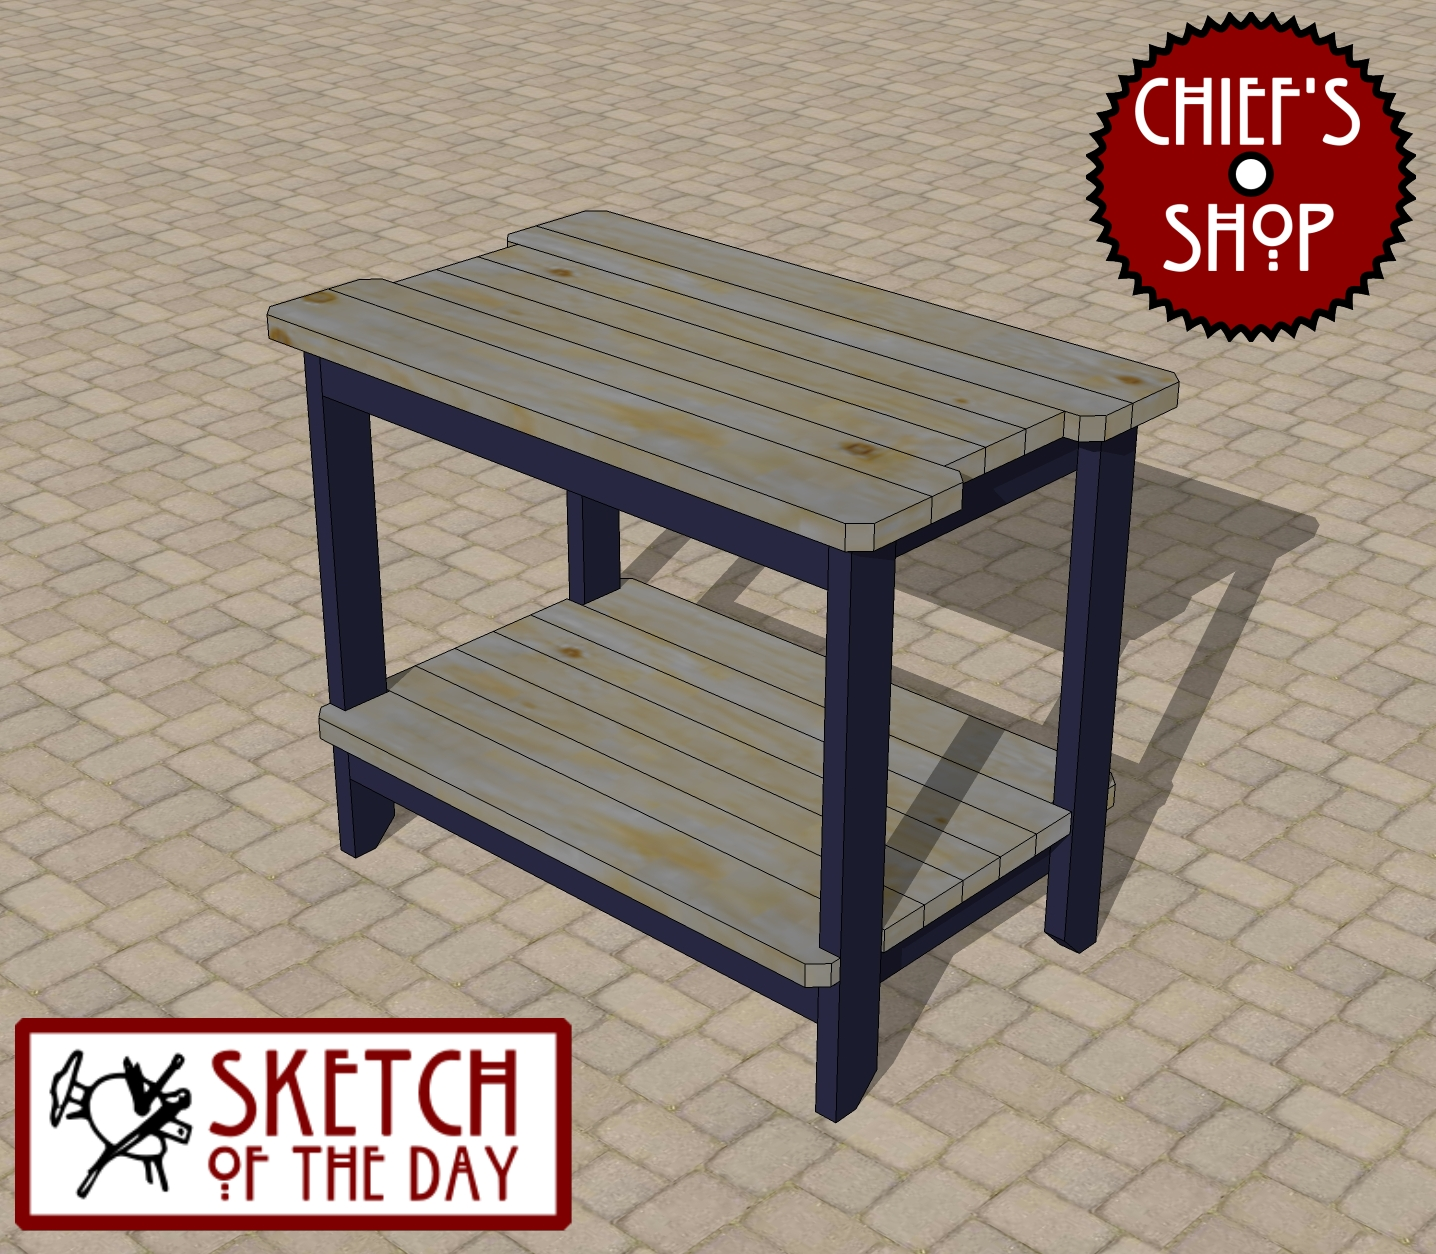 grill side table chief outdoor sketch the day bar woodworking multi drawer chest outside umbrella stand modern wooden coffee designs iron and wood round dark dog wash tub piece